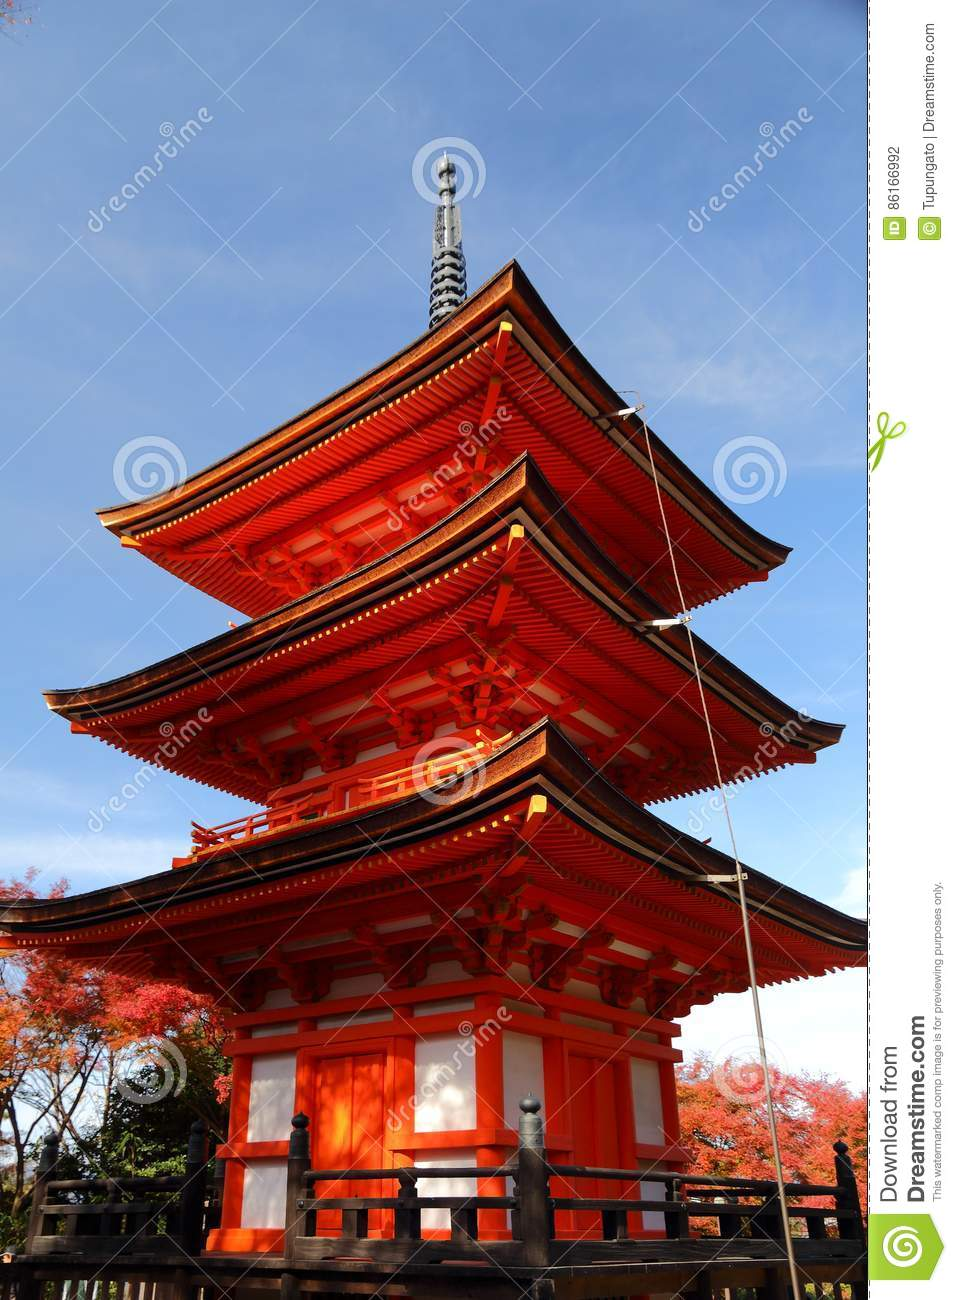 Pagode in Japan